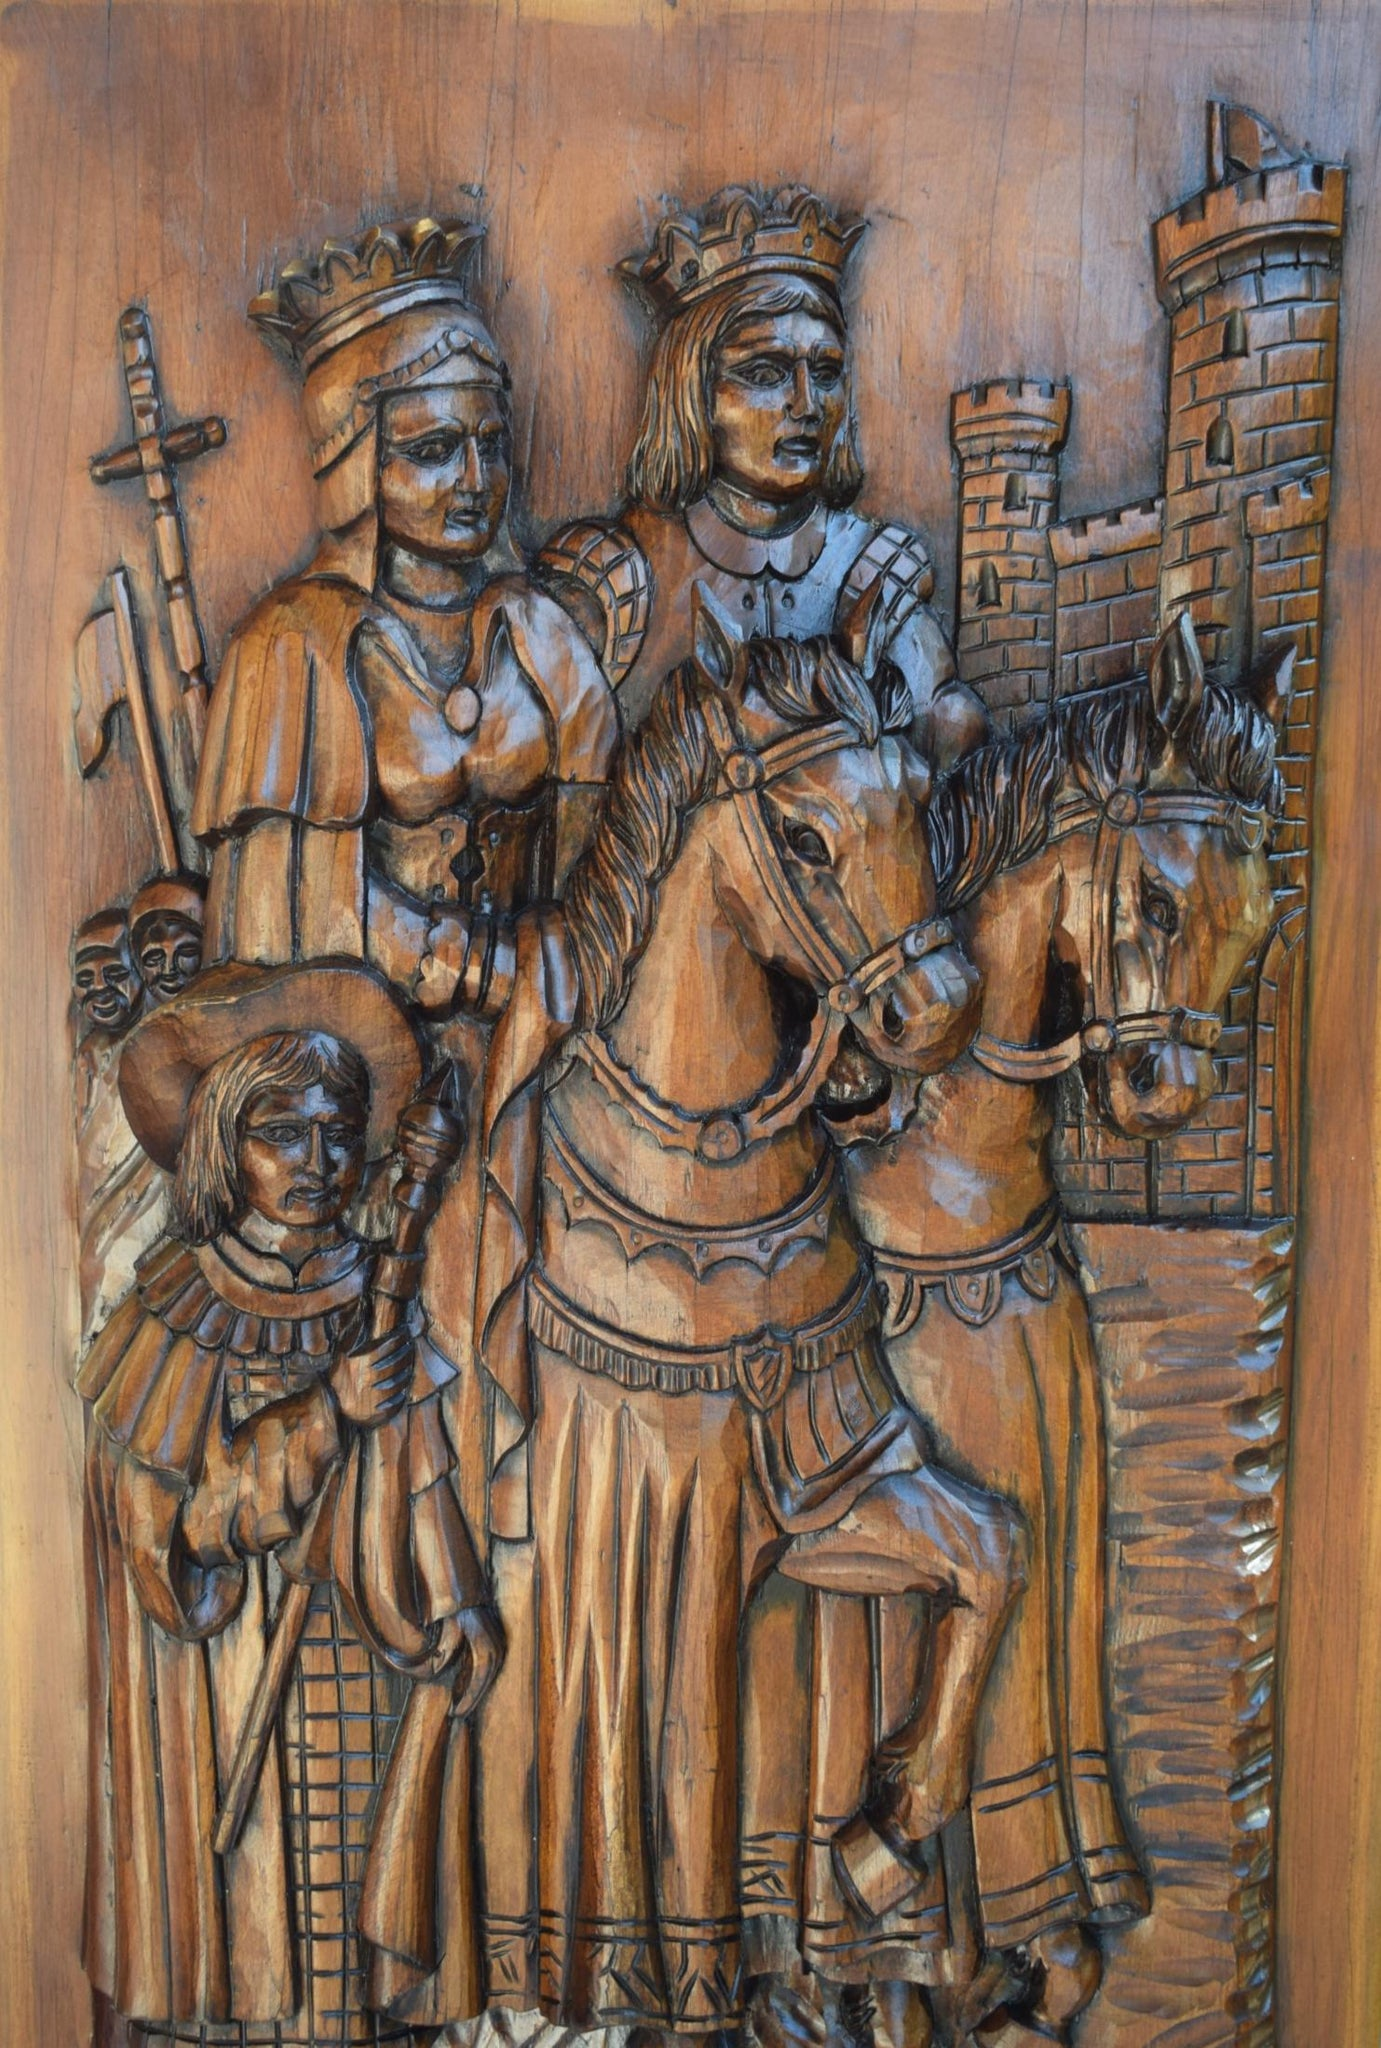 Gothic French Large Thick Carved Wood Wall Panel of French King and Queen Couple Carving Middle Ages French Chateau